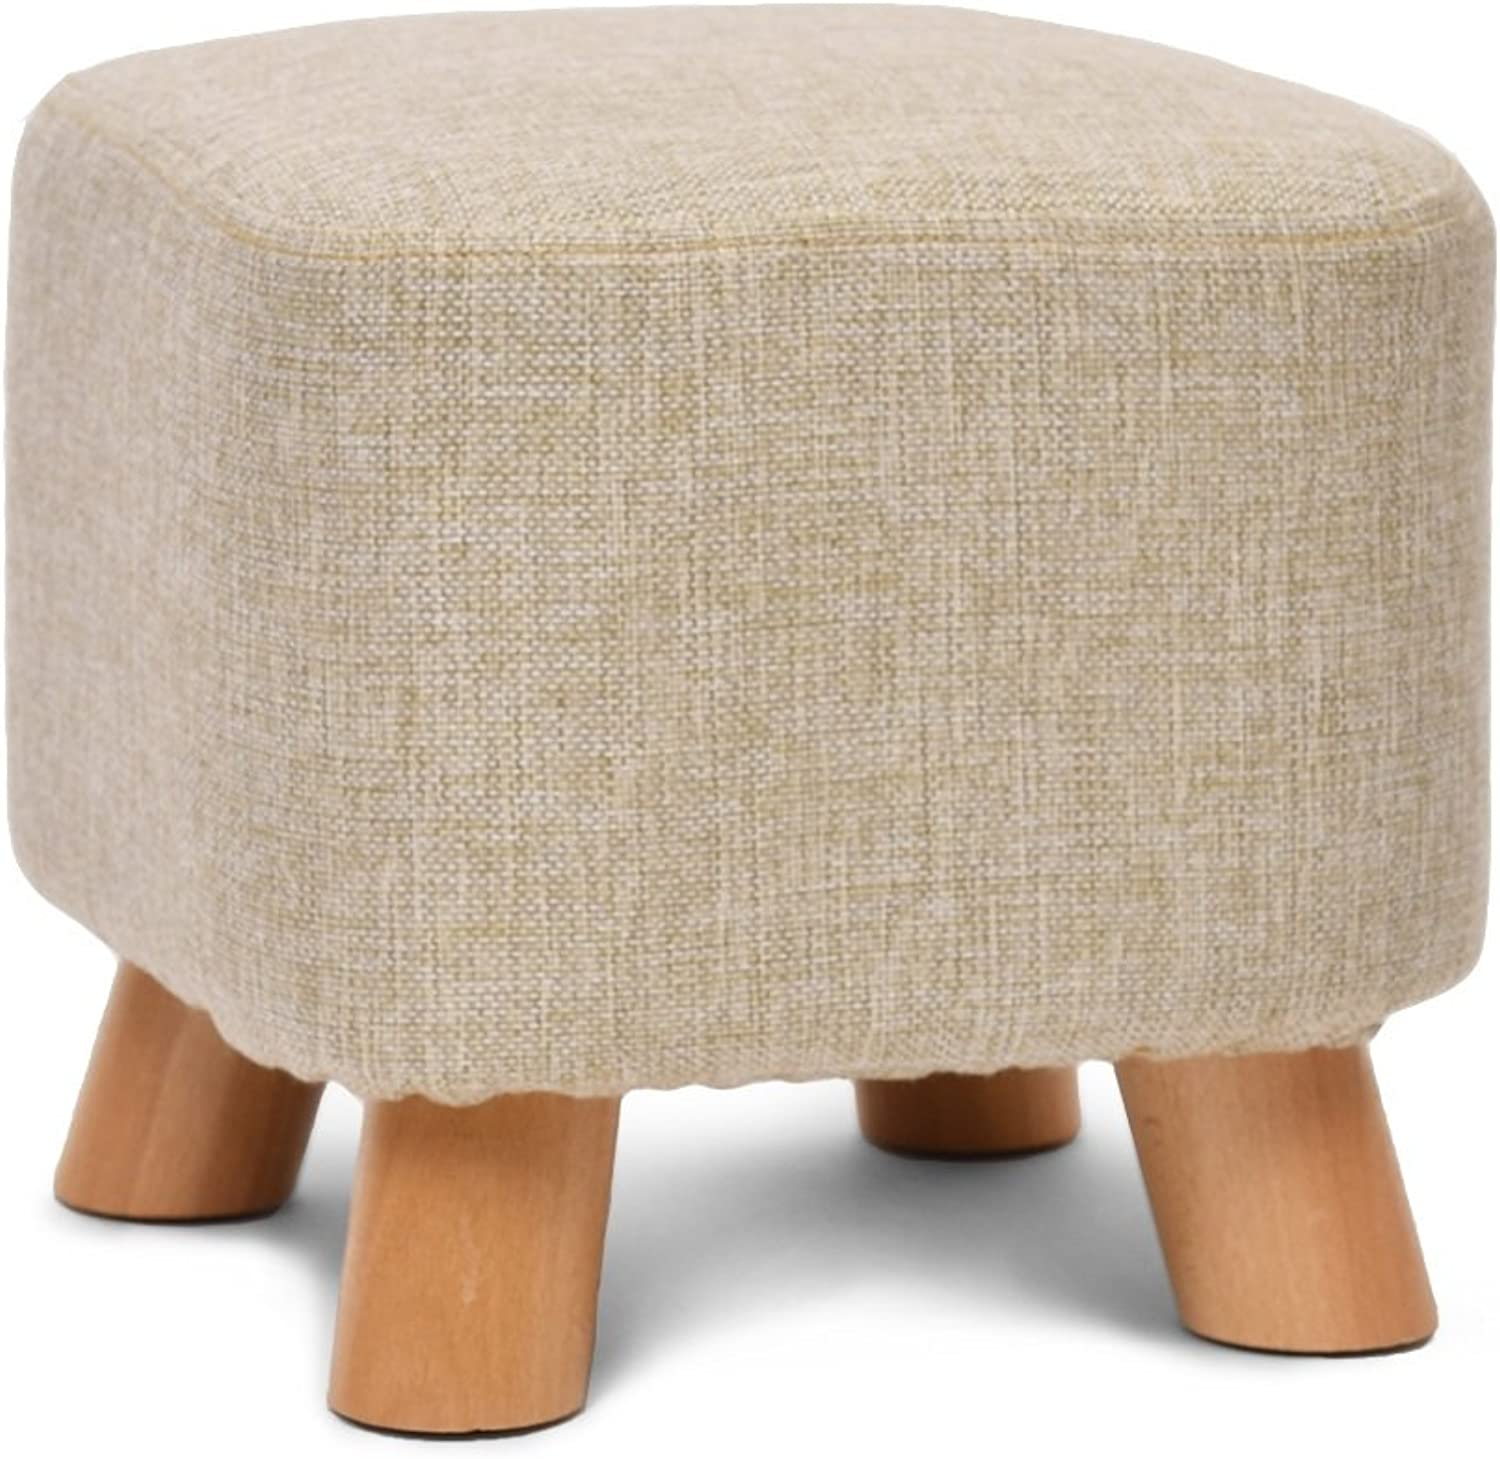 Cotton Linen Art Stool Creative Stool Solid Wood shoes Stool Bedroom Stool Fabric Stool Sofa Stool Coffee Table Bench Home Stool Leisure Stool   (28  25cm) (color   Beige)